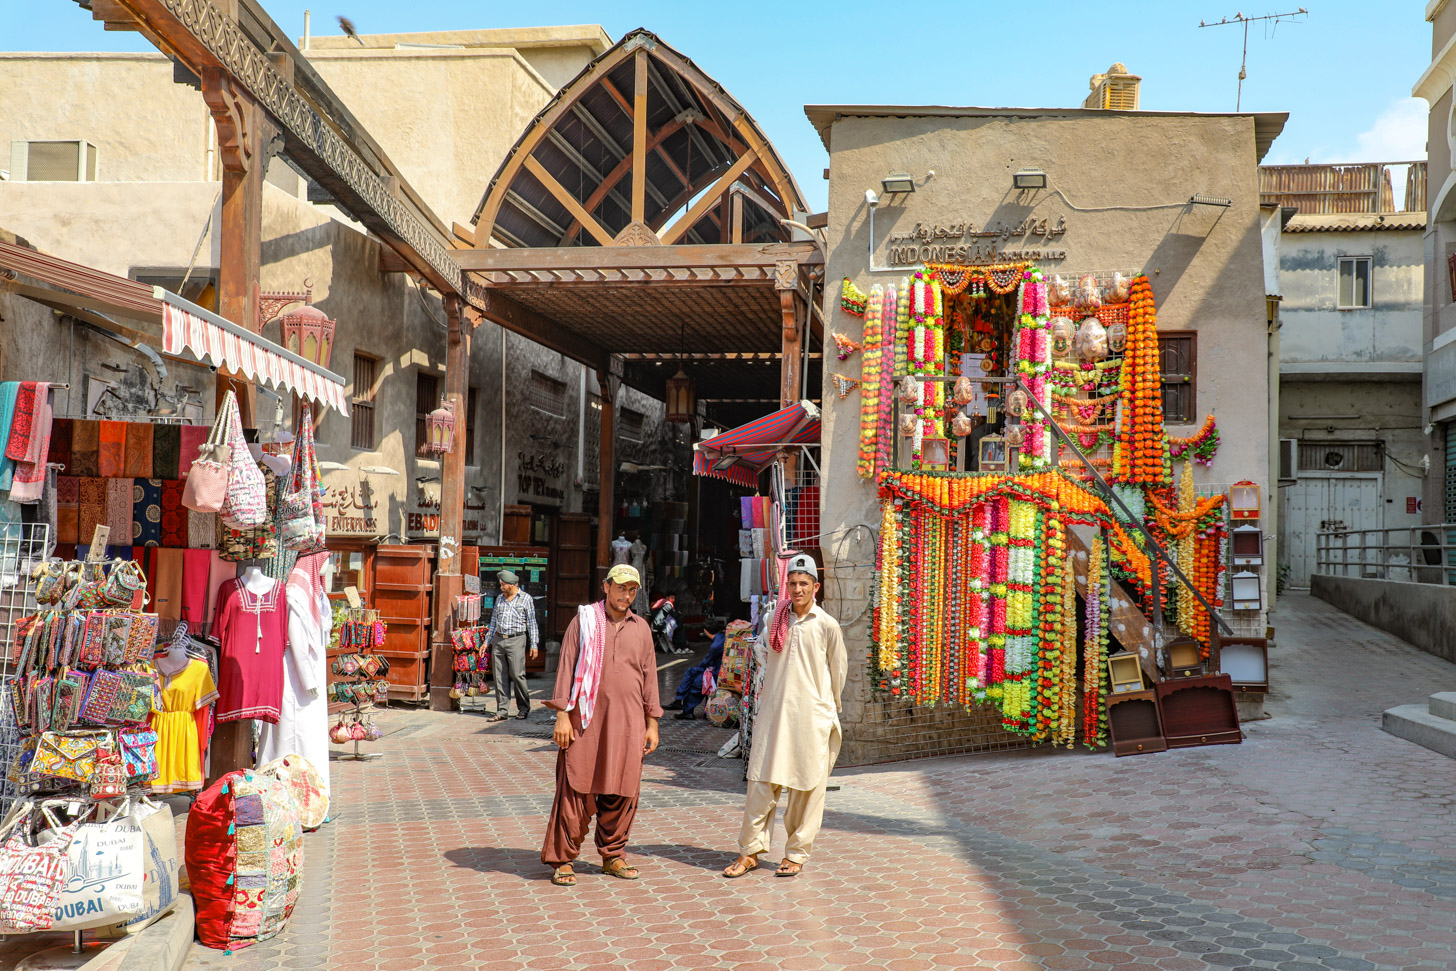 De traditionele souk in de oude wijk Bur Dubai.